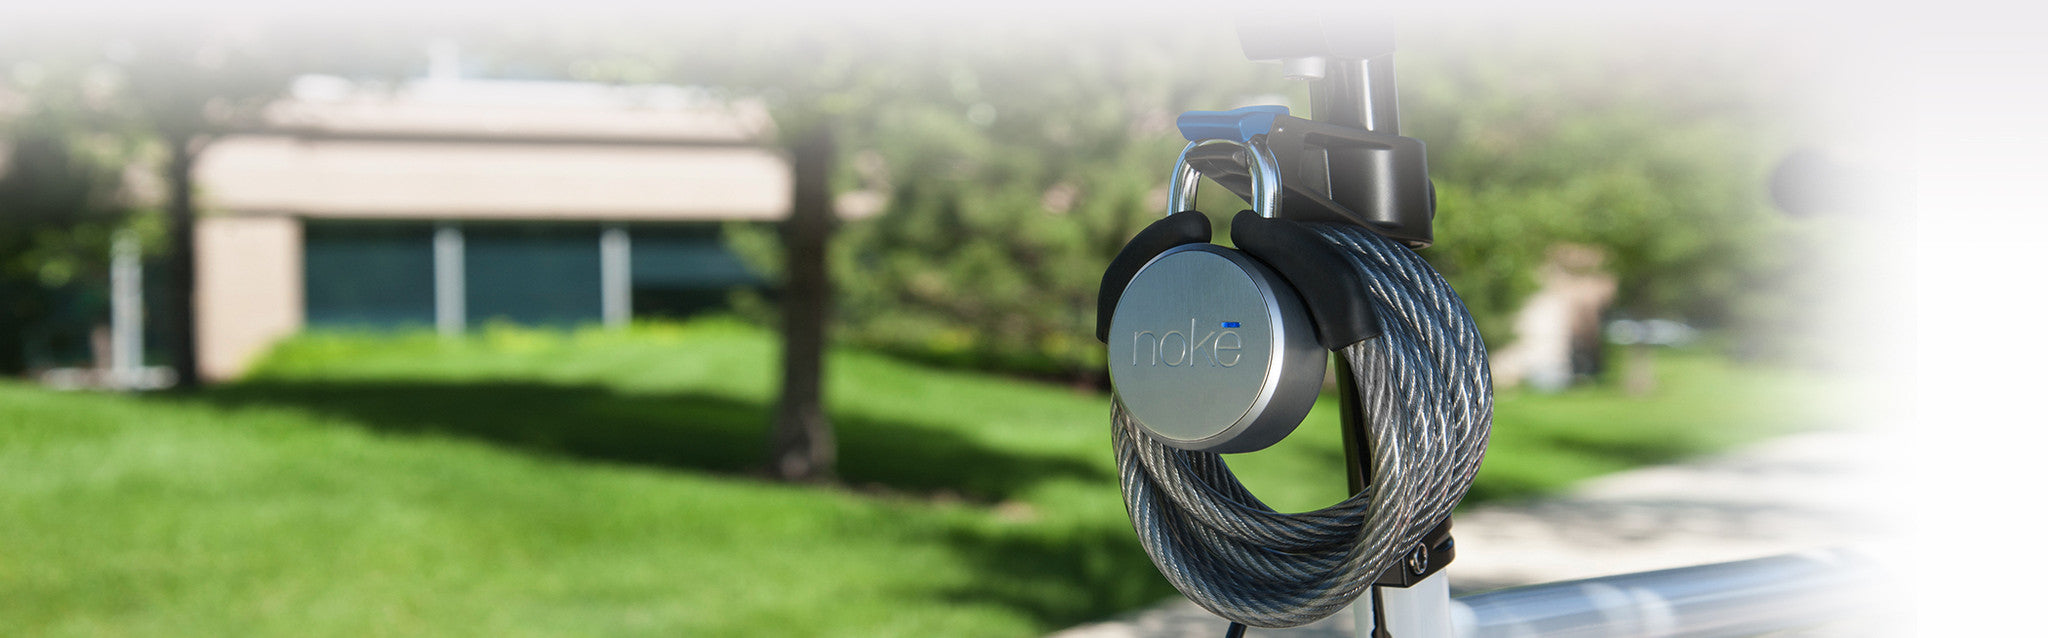 Noke World's First Bluetooth Padlock and Bike Lock To Go On Sale in UK